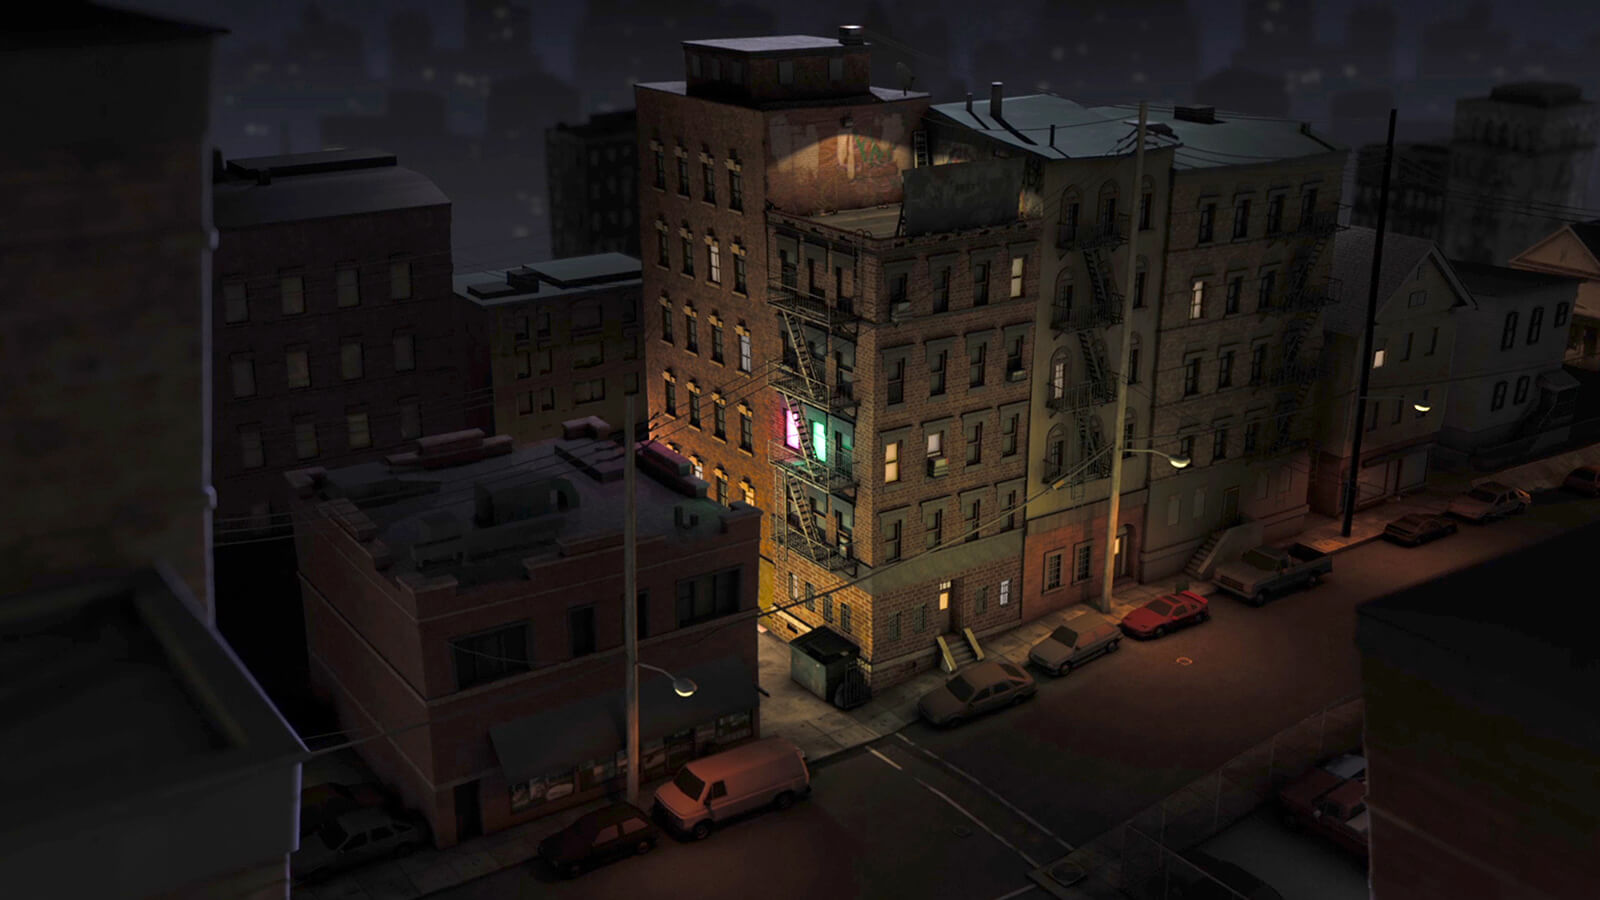 A brick apartment building in a darkened urban area at night. Two neighboring windows are aglow, one pink, one green.